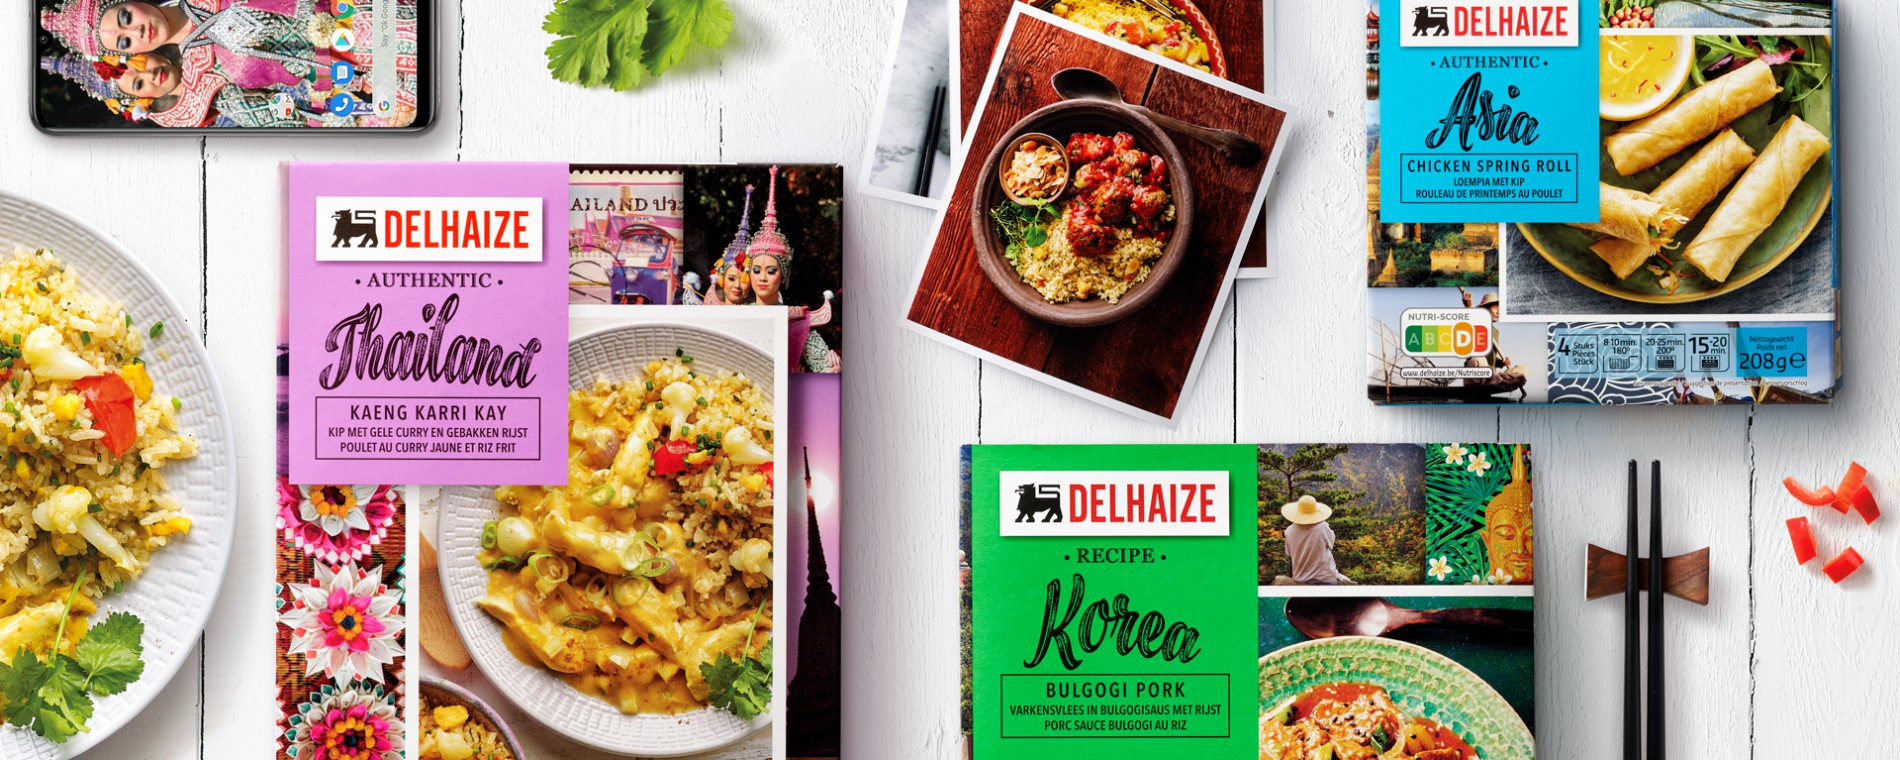 Quatre Mains package design - Package design Food of the World, delhaize, quatre mains